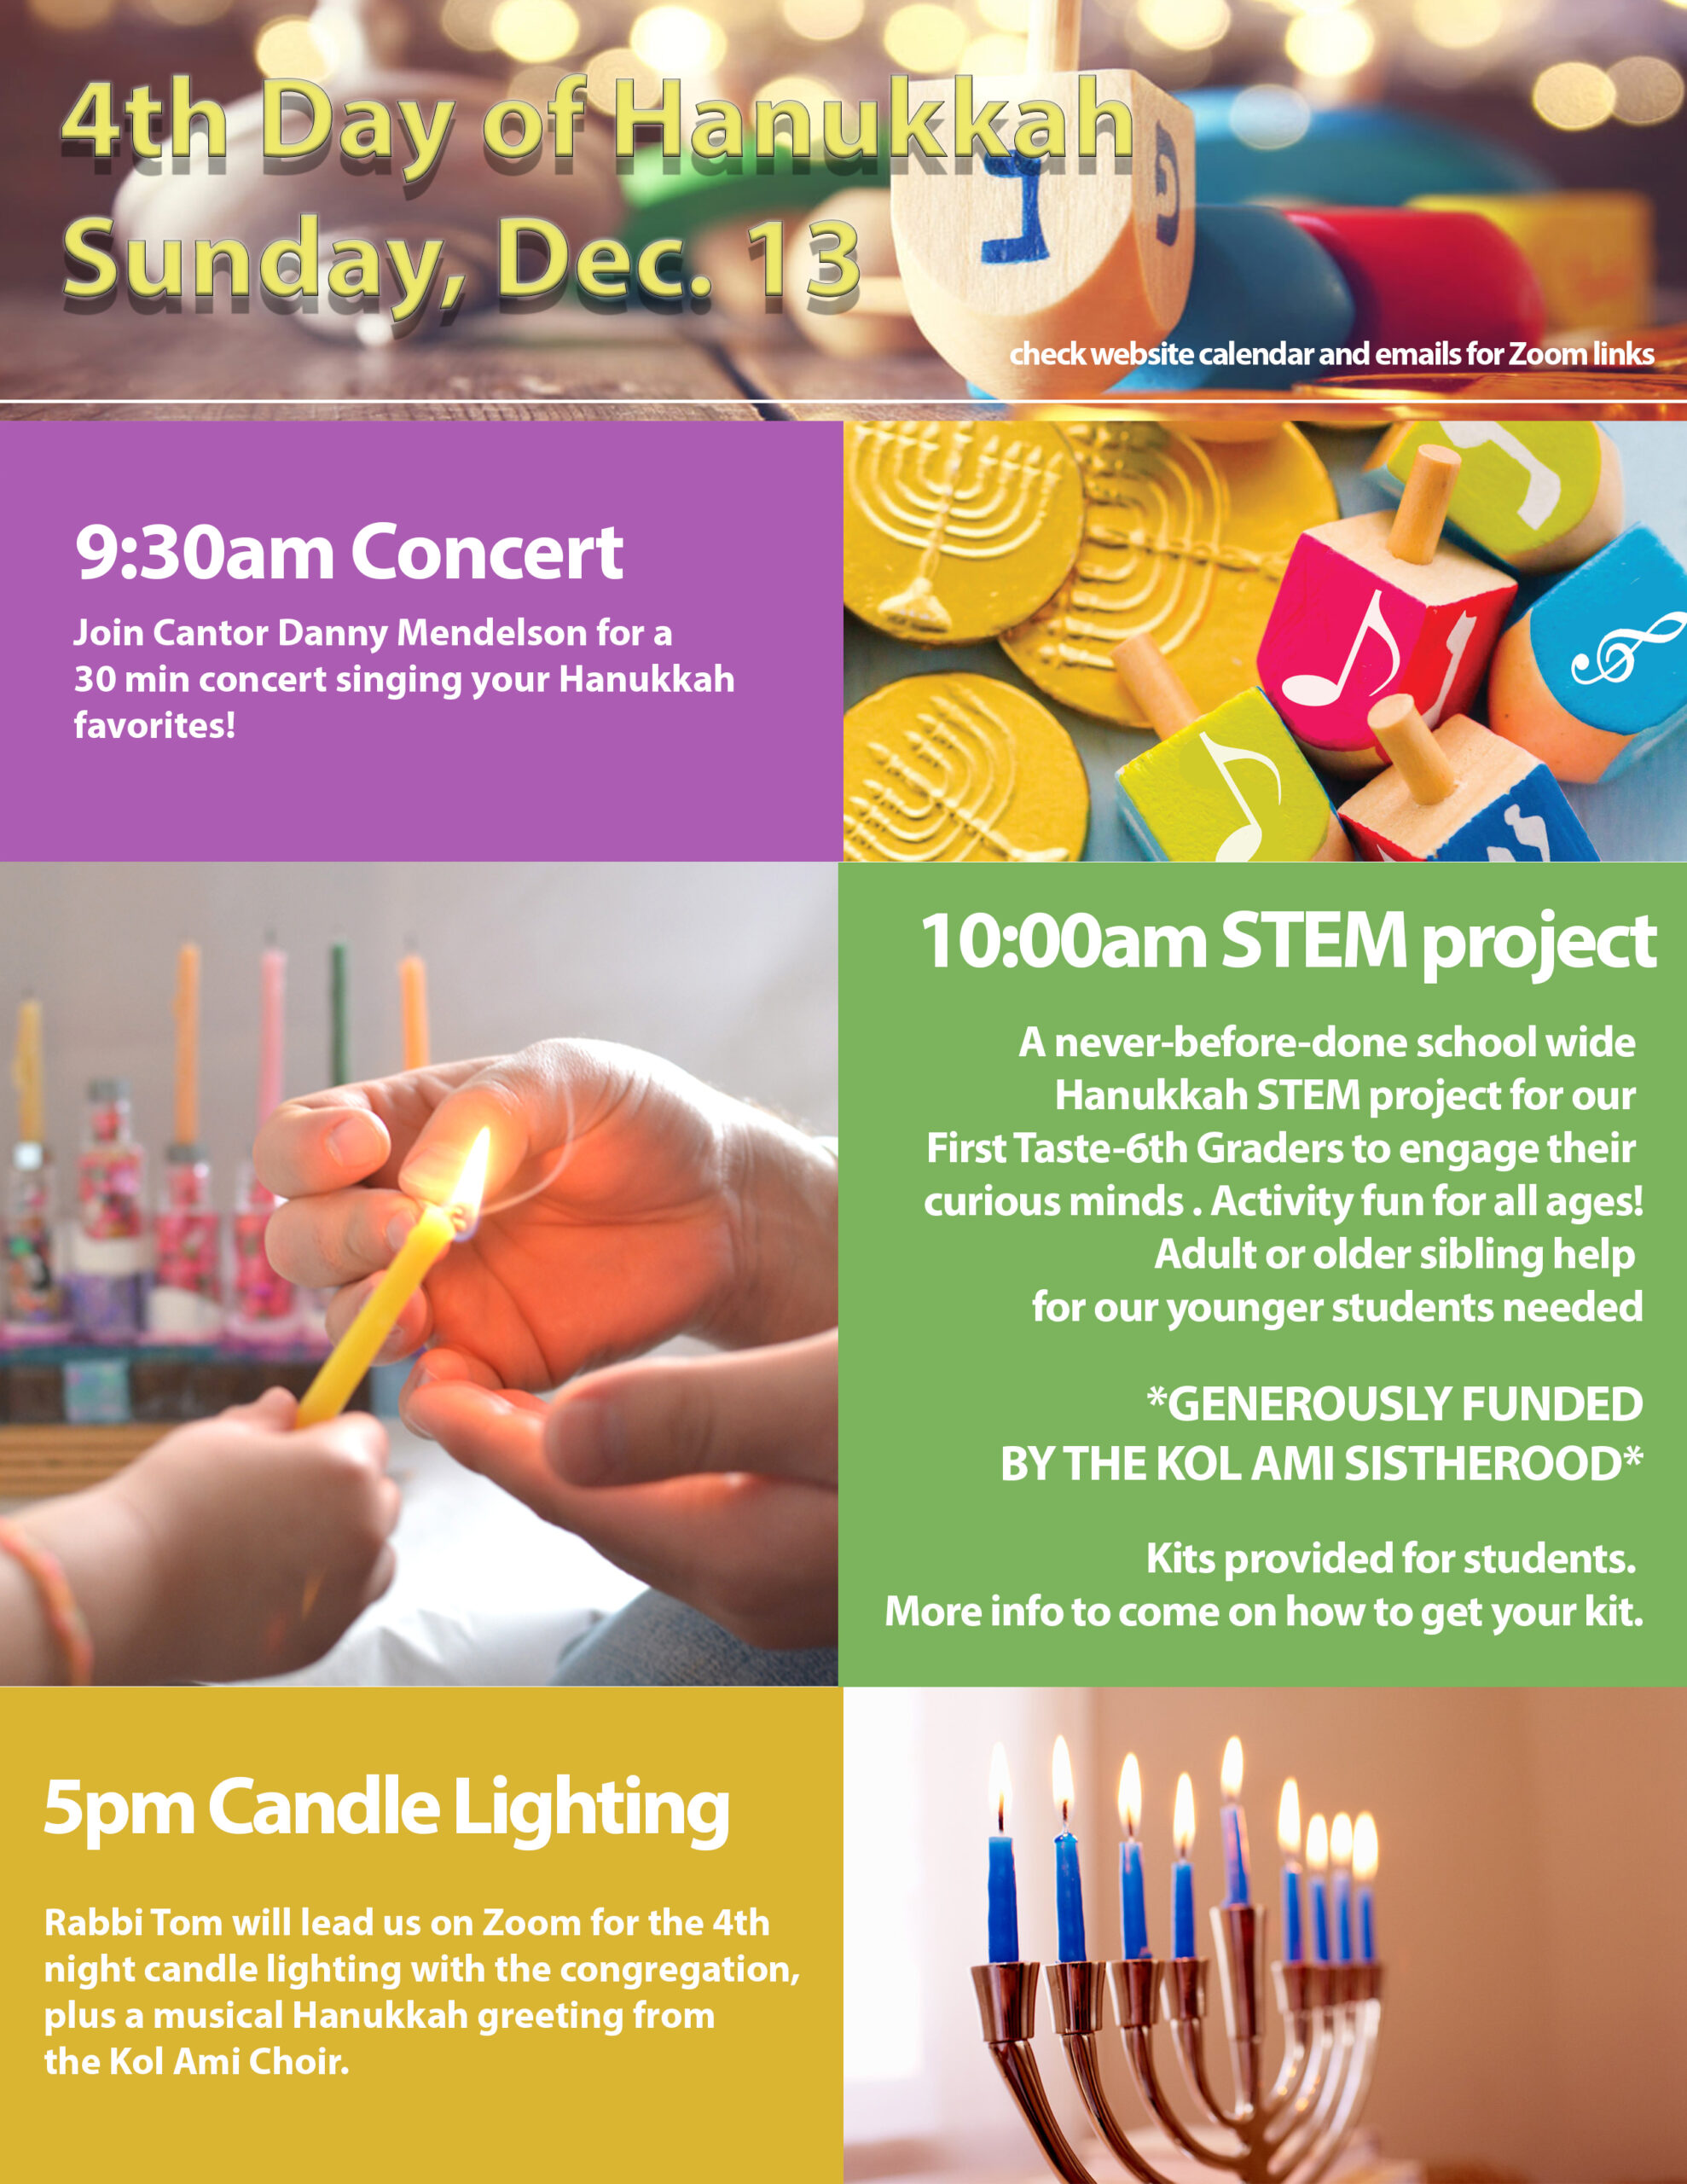 4th night of hanukkah flyer